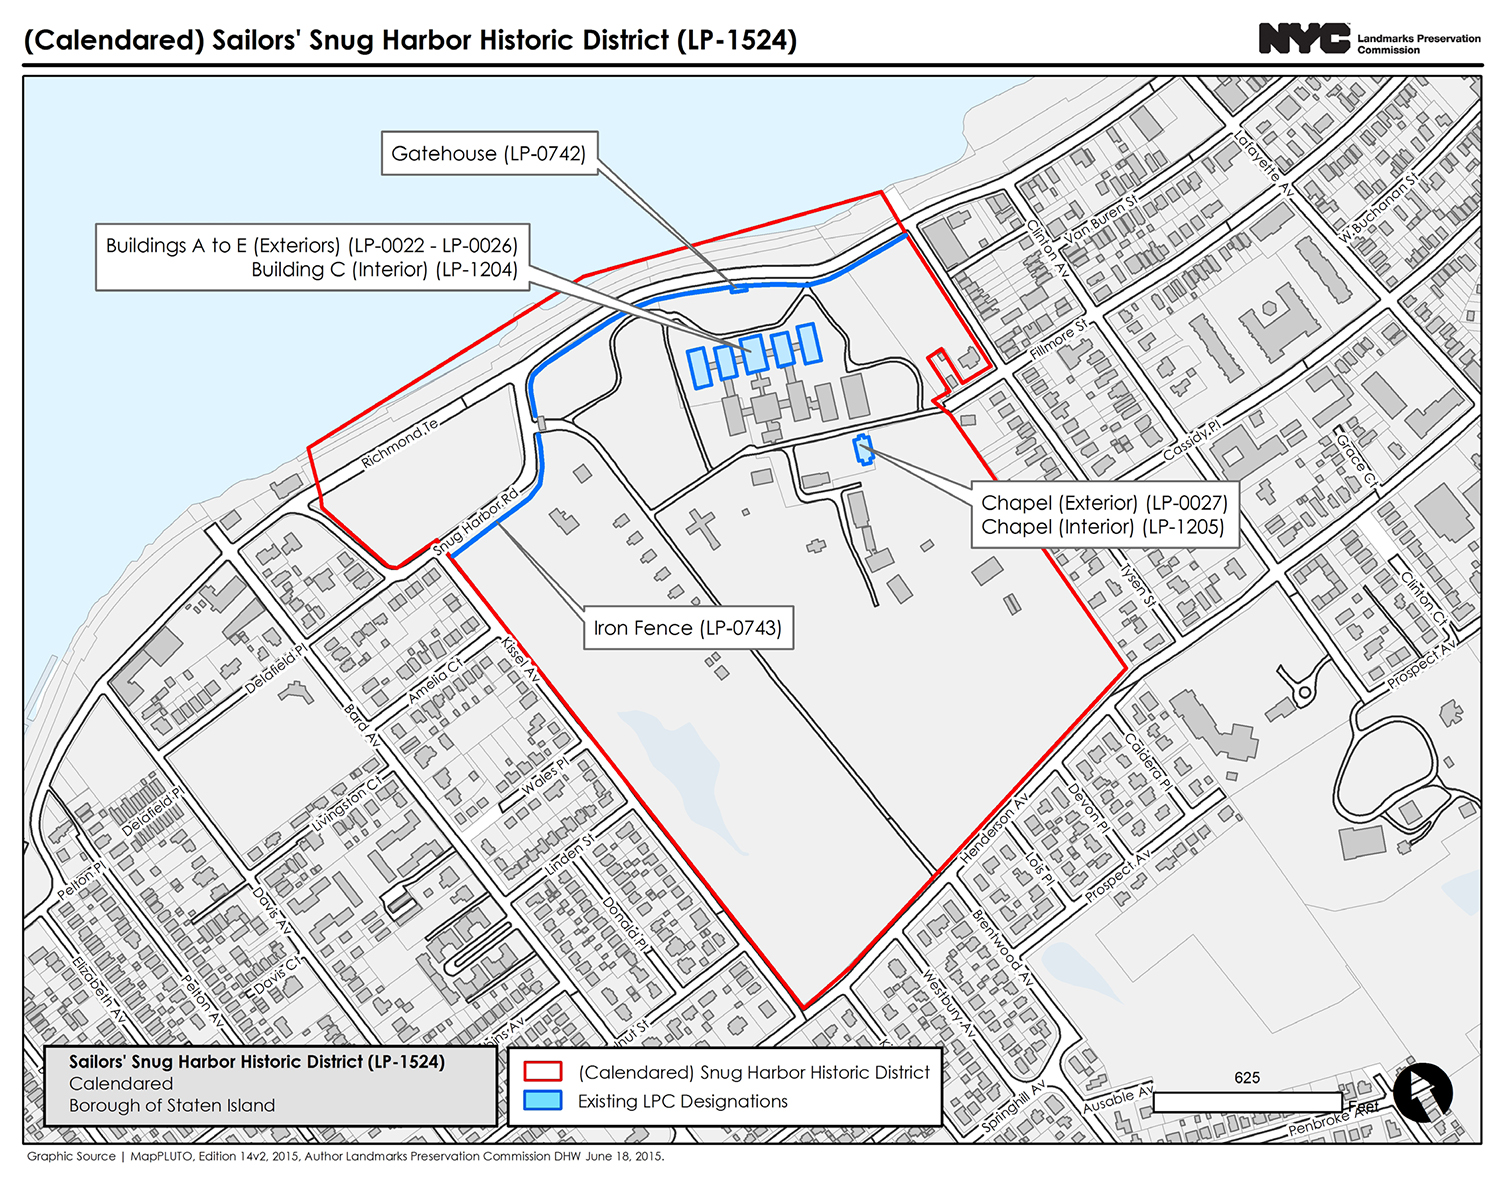 Proposed Sailors' Snug Harbor Historic District